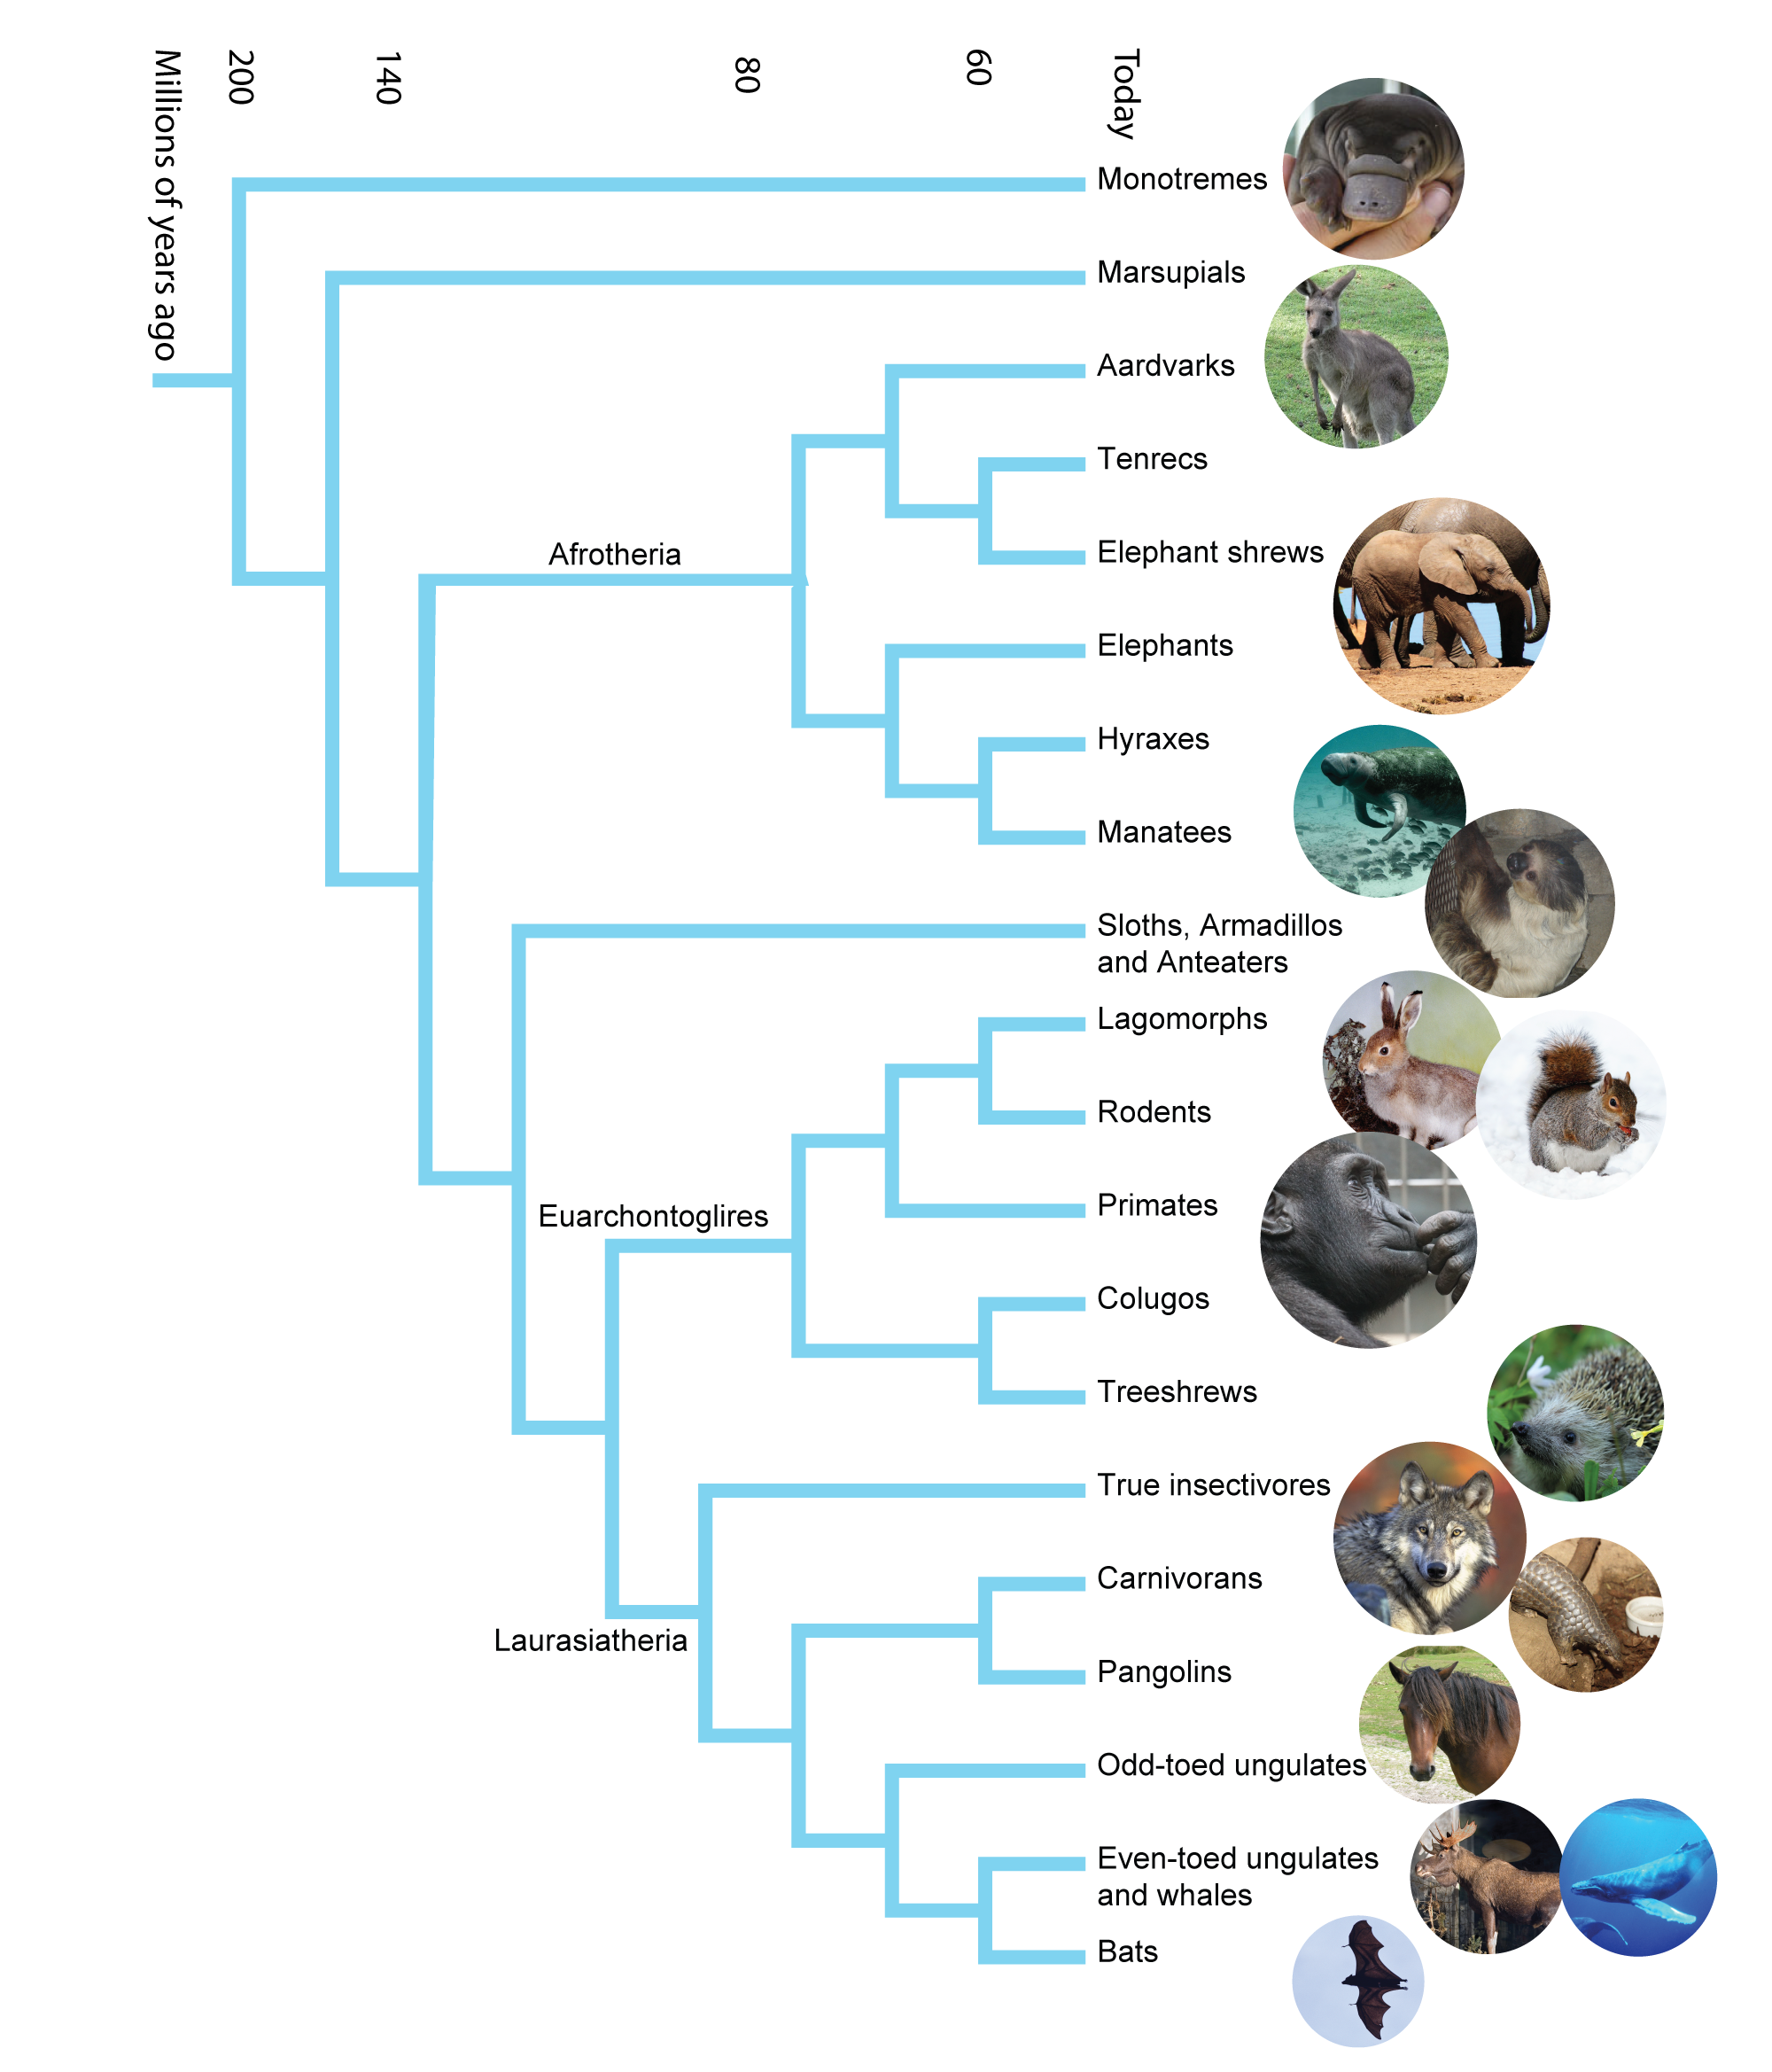 Mammal family tree. Image: Annica Roos, NRM